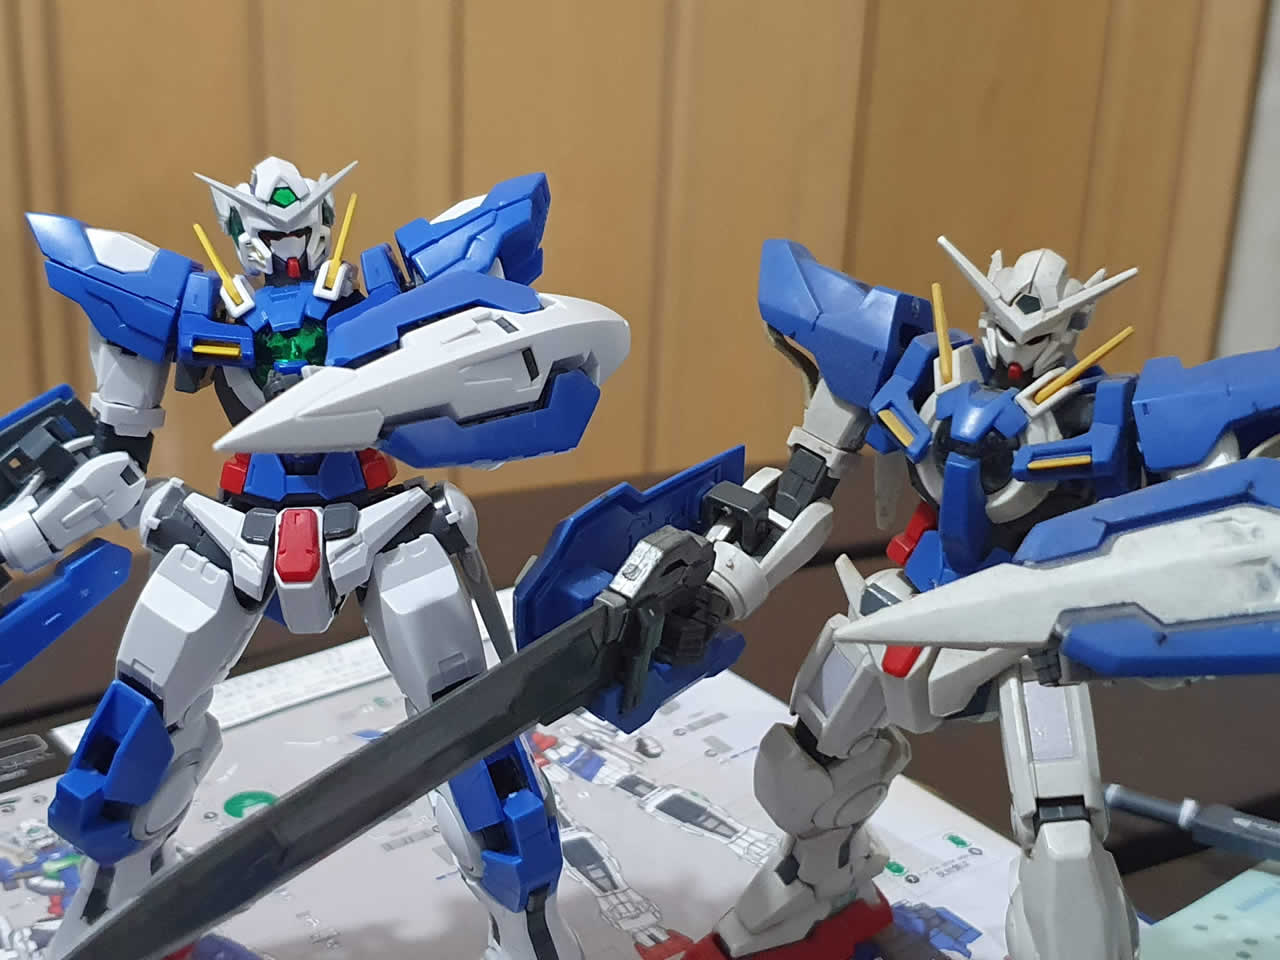 Comparison between the Exia Repair 3 RG and old Exia HD model